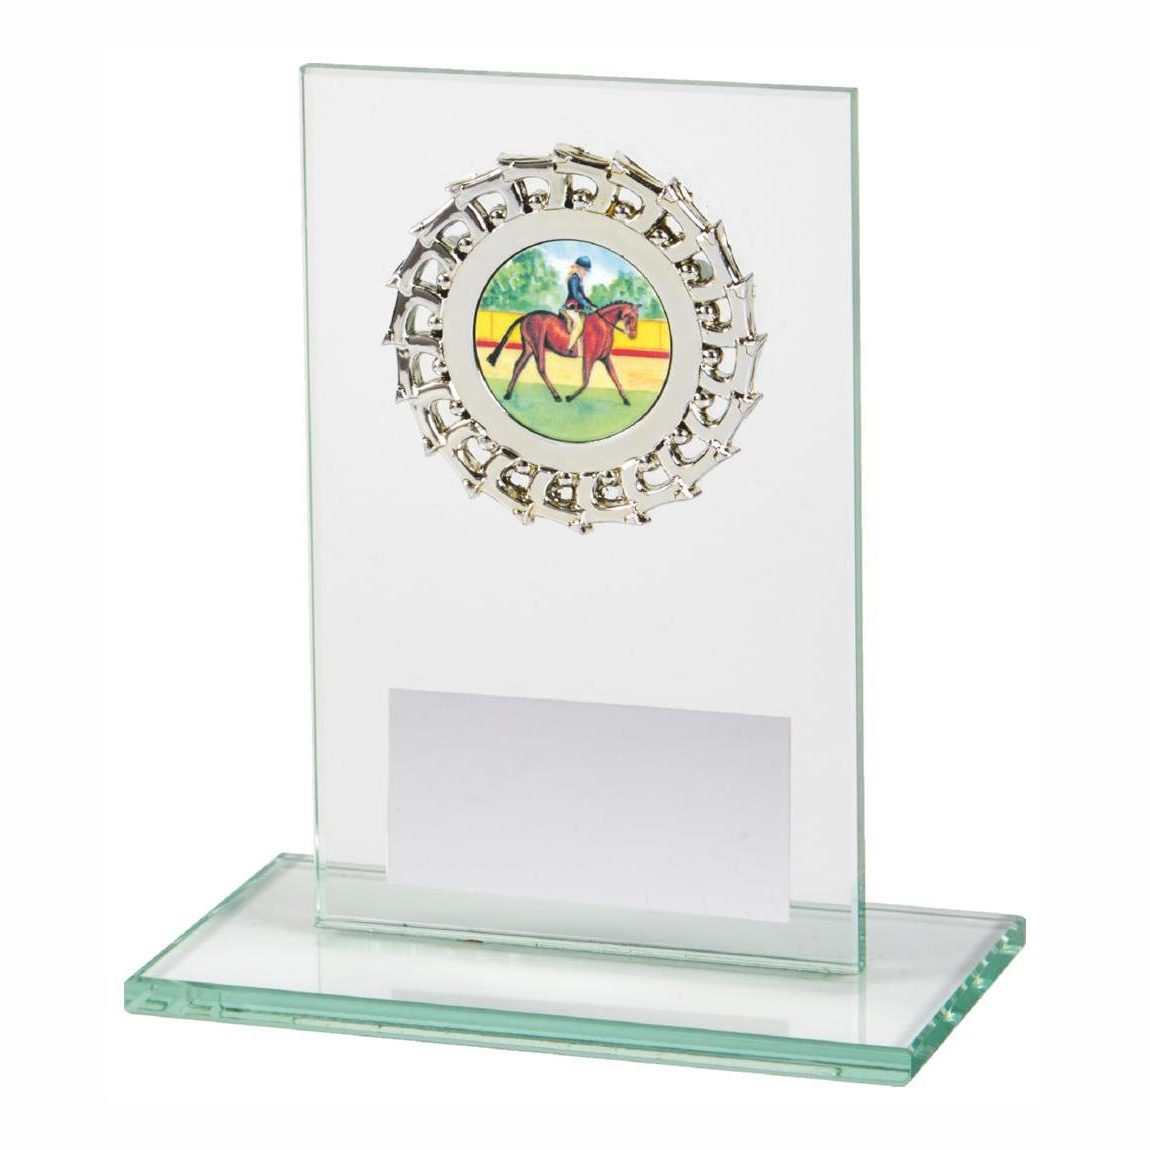 Budget Priced Glass Sports Trophy 12cms tall